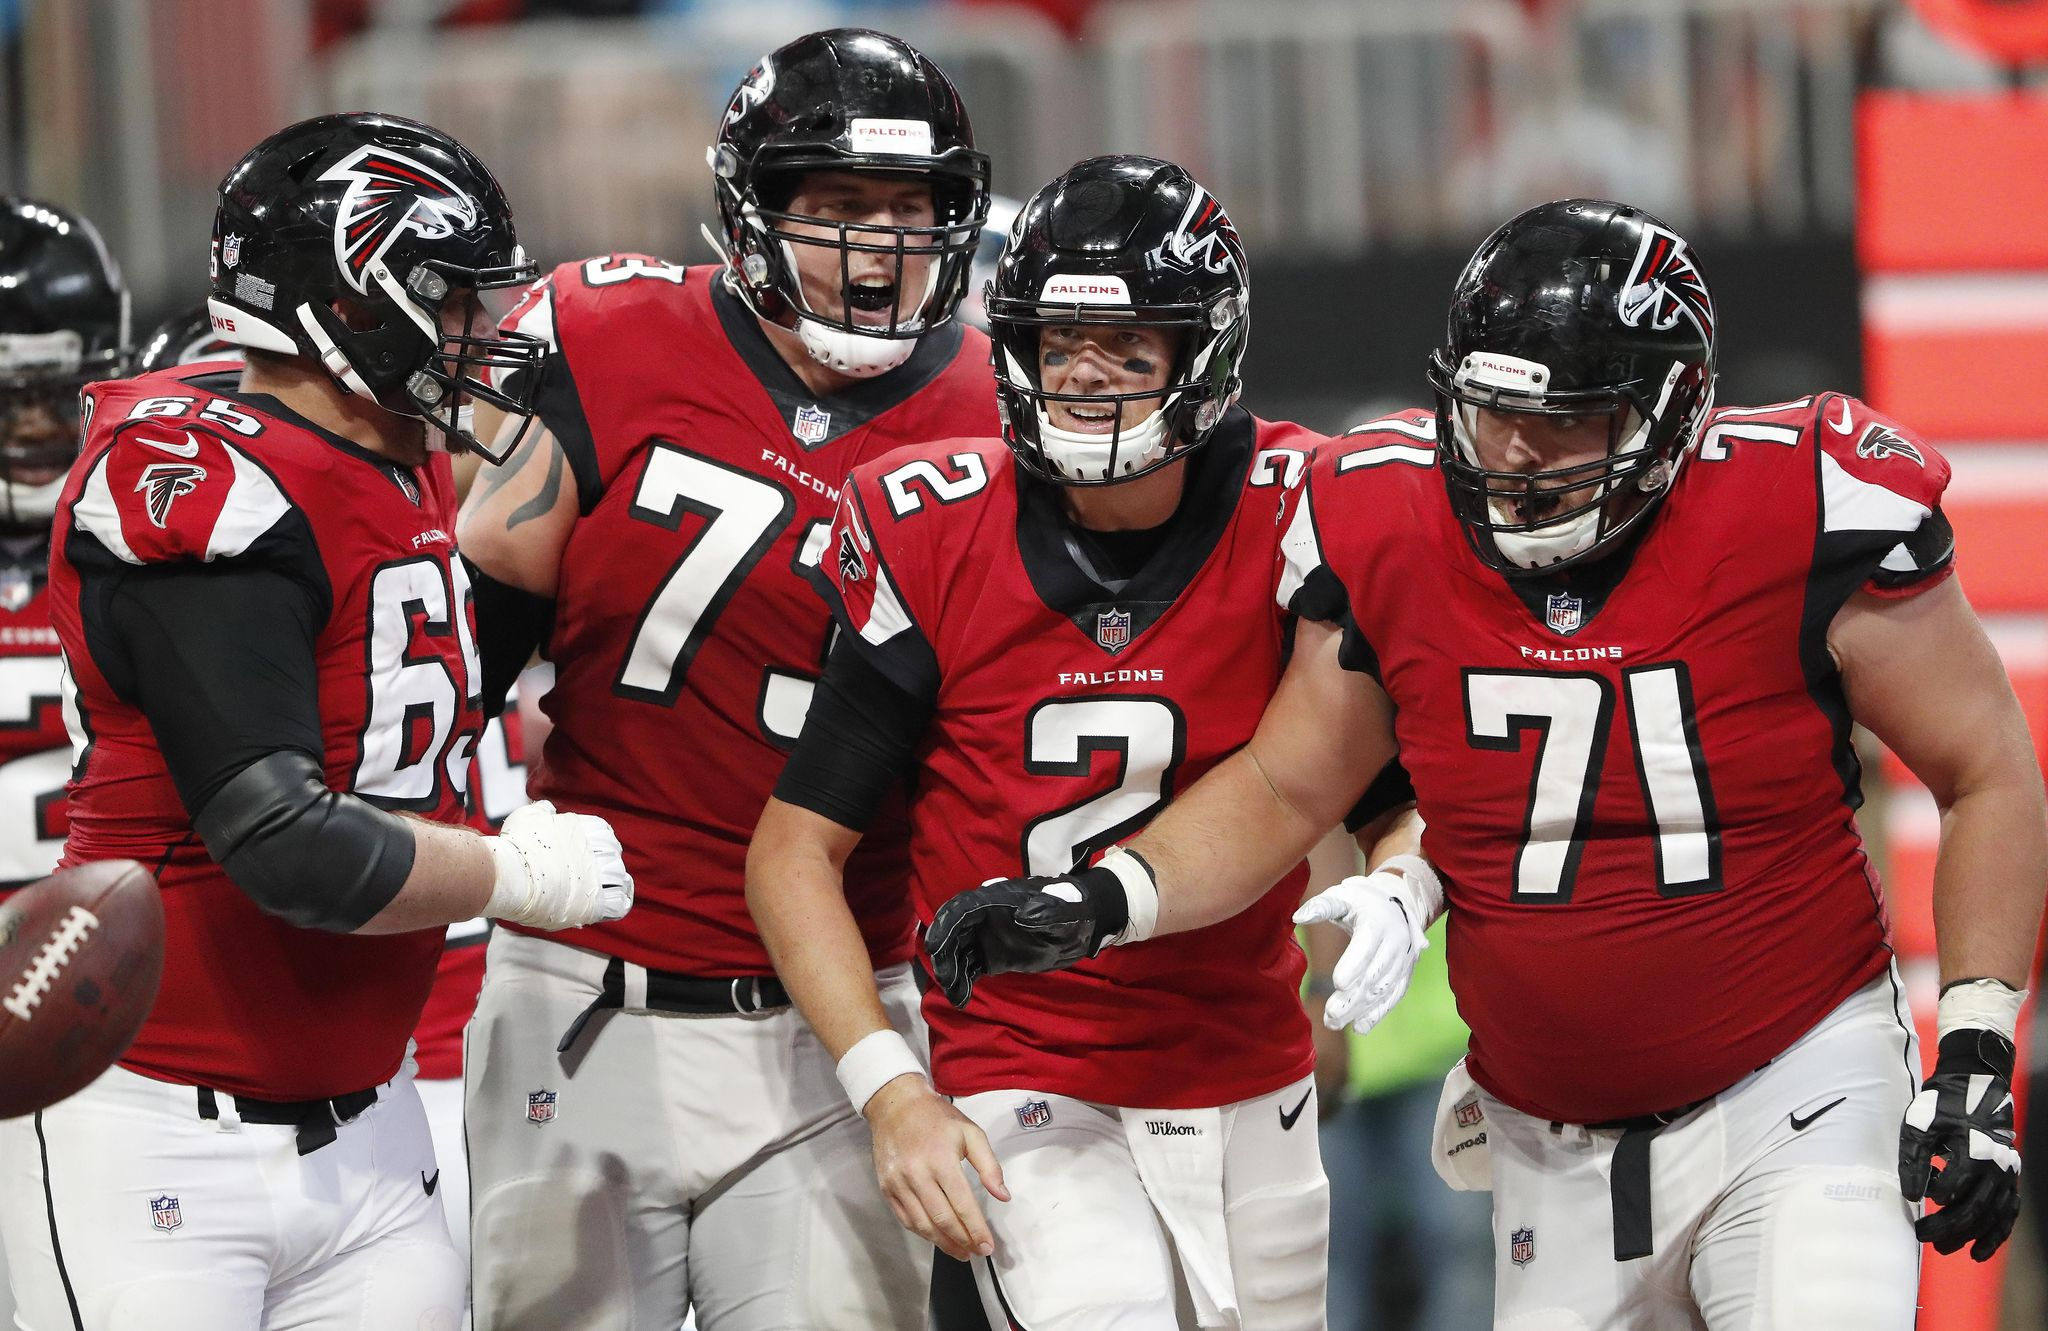 Panthers_falcons_football_55740_s2048x1331